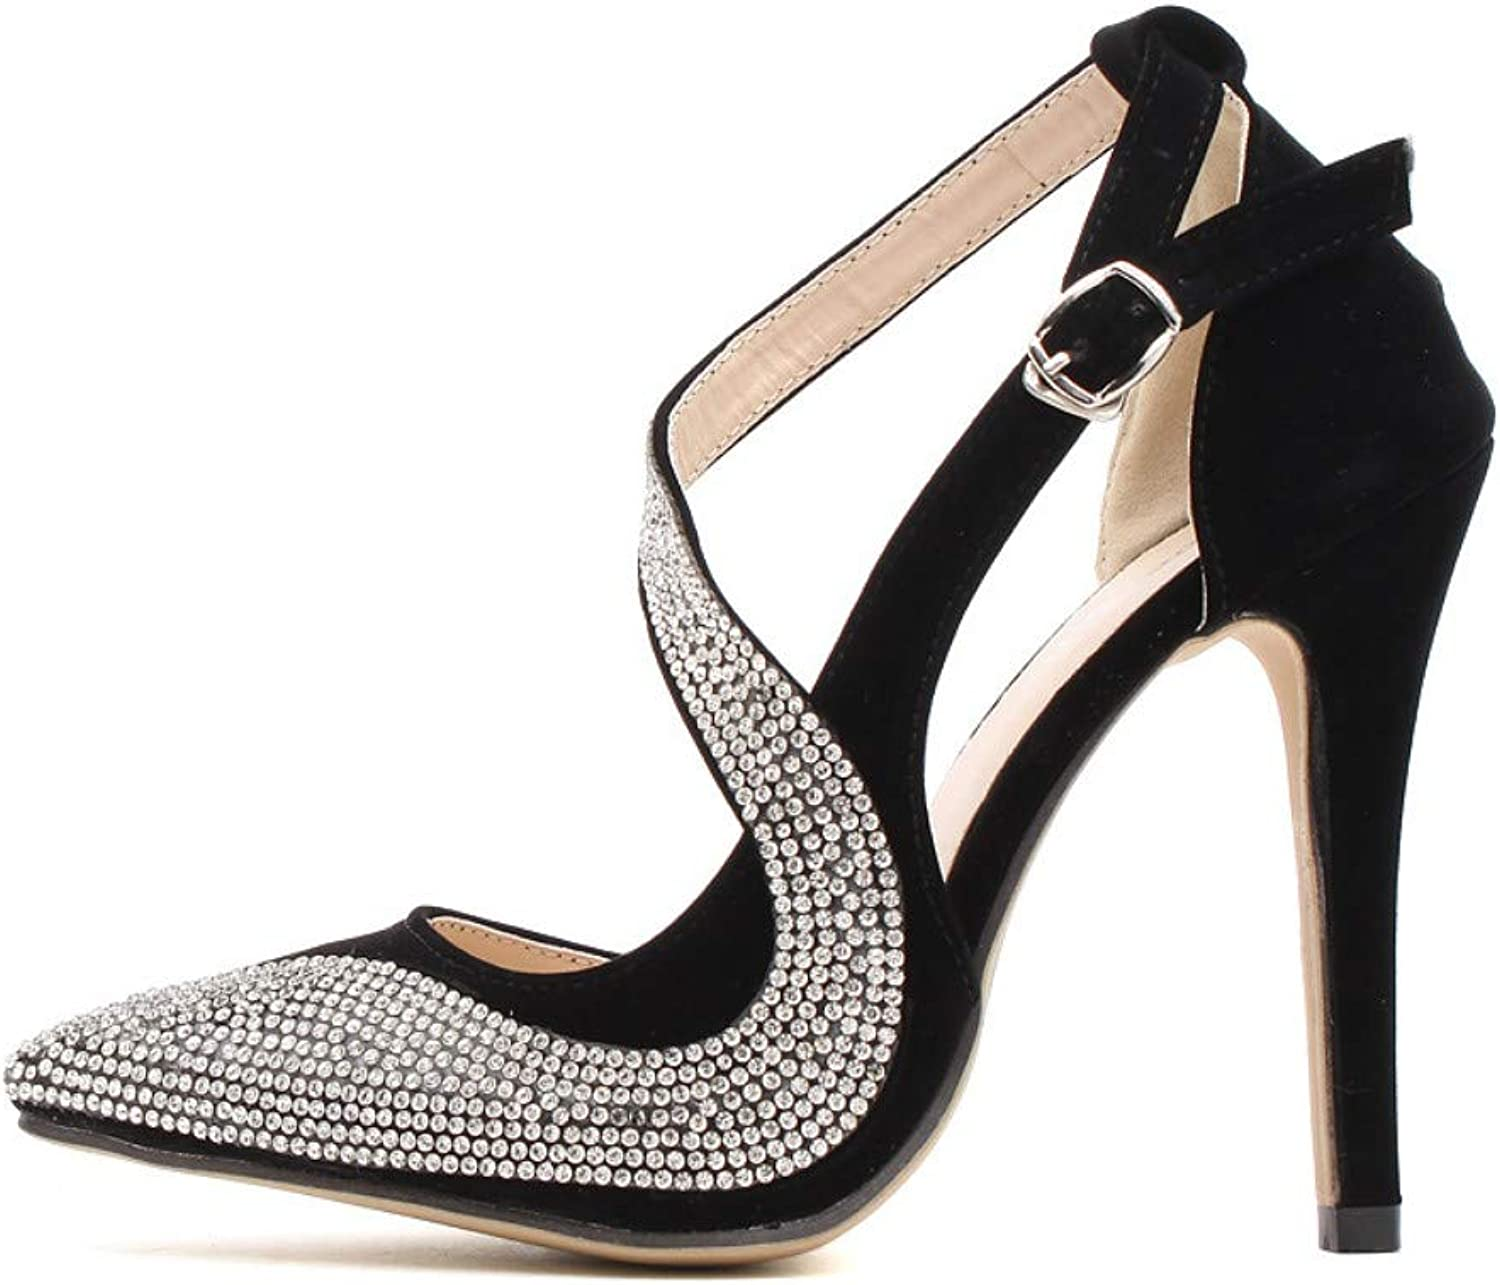 JQfashion Women's High-Heeled shoes with Diamond Tip and Fine-Heeled shoes in Spring and Summer